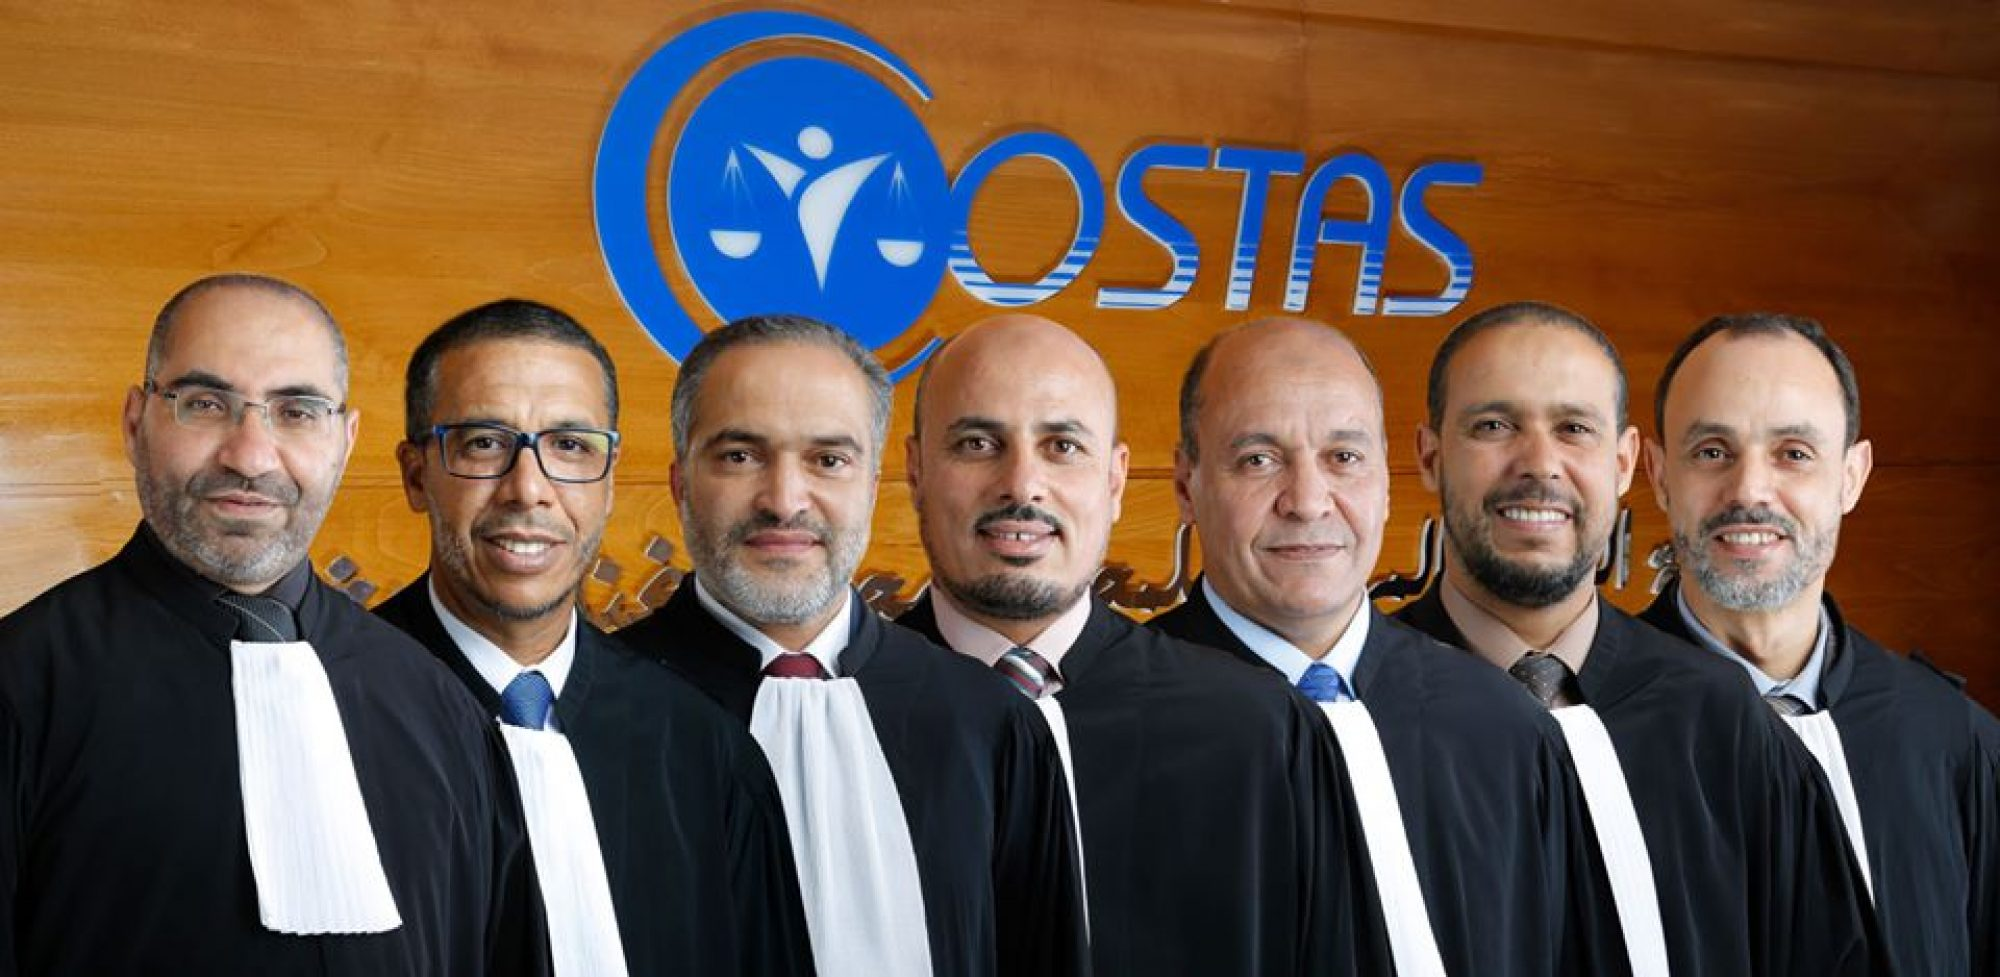 Cabinet COSTAS d'Avocats Casablanca CabinetCostas Law Firm